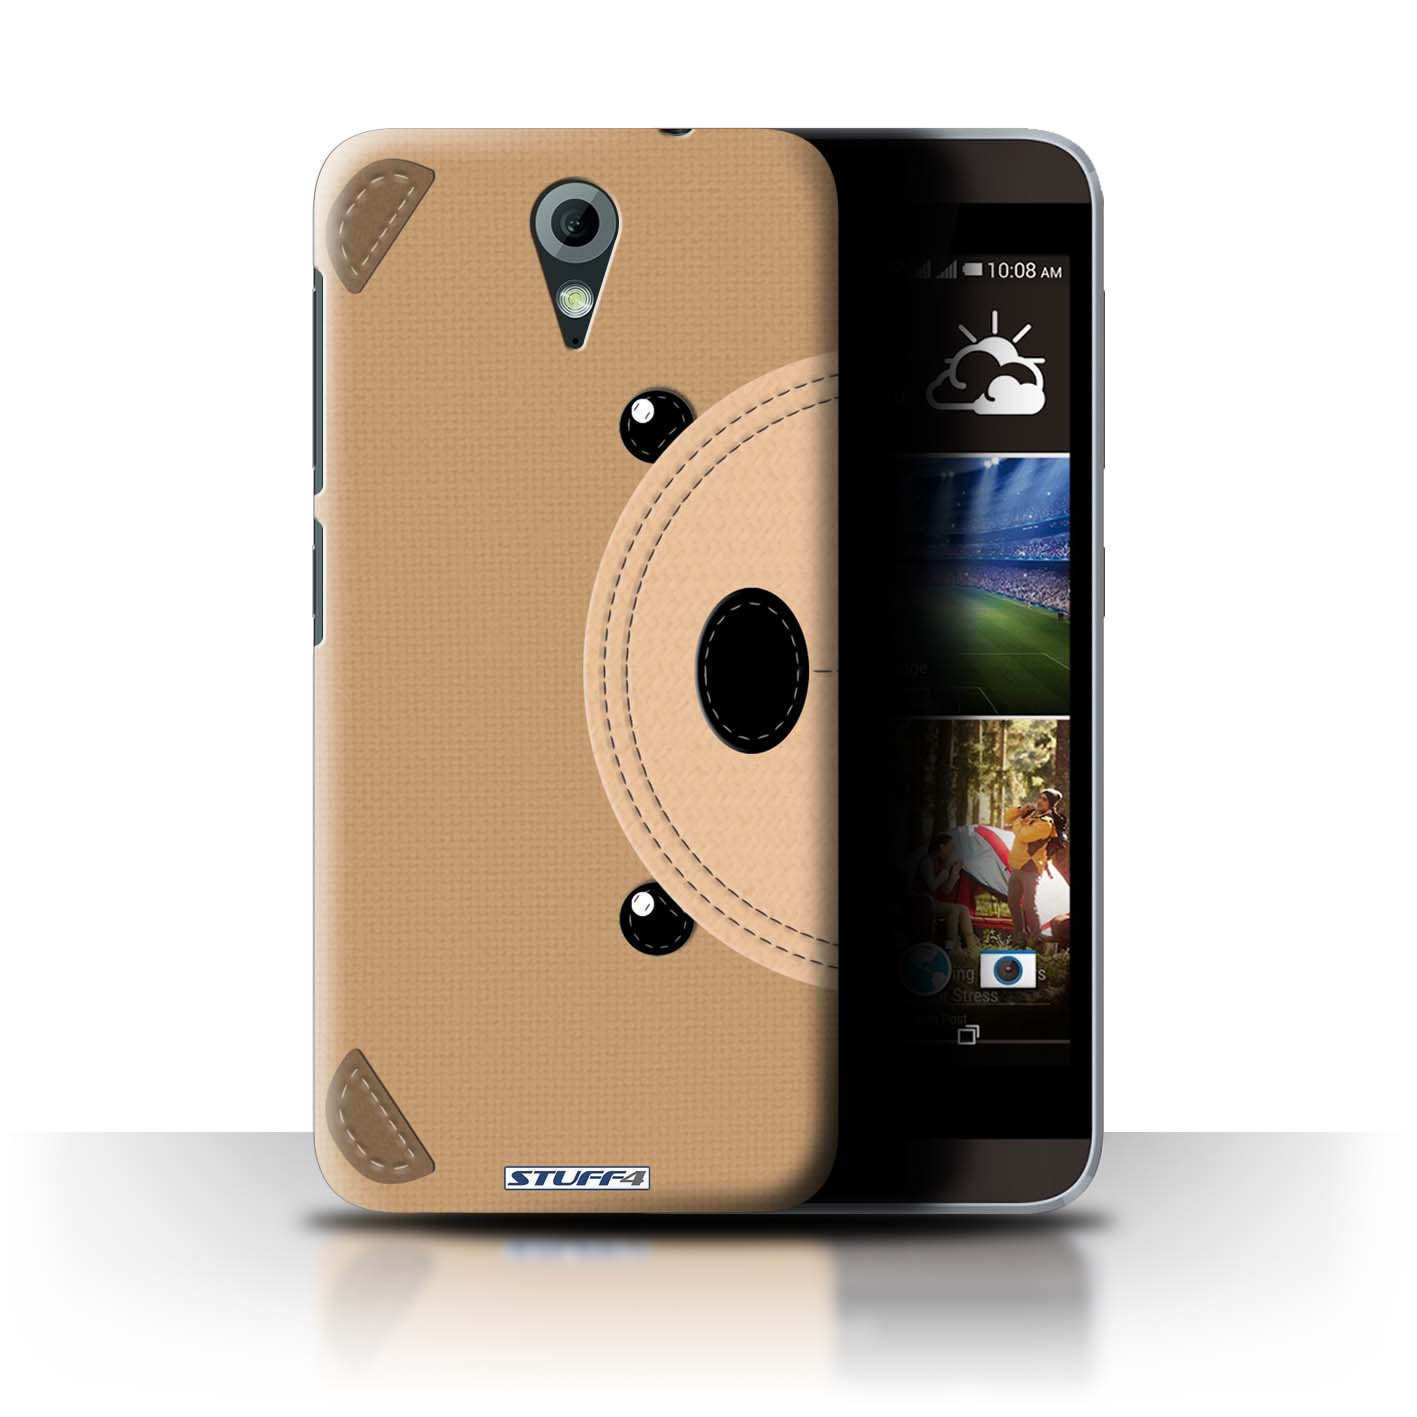 STUFF4 Back Case/Cover/Skin for HTC Desire 620G/Animal Stitch Effect